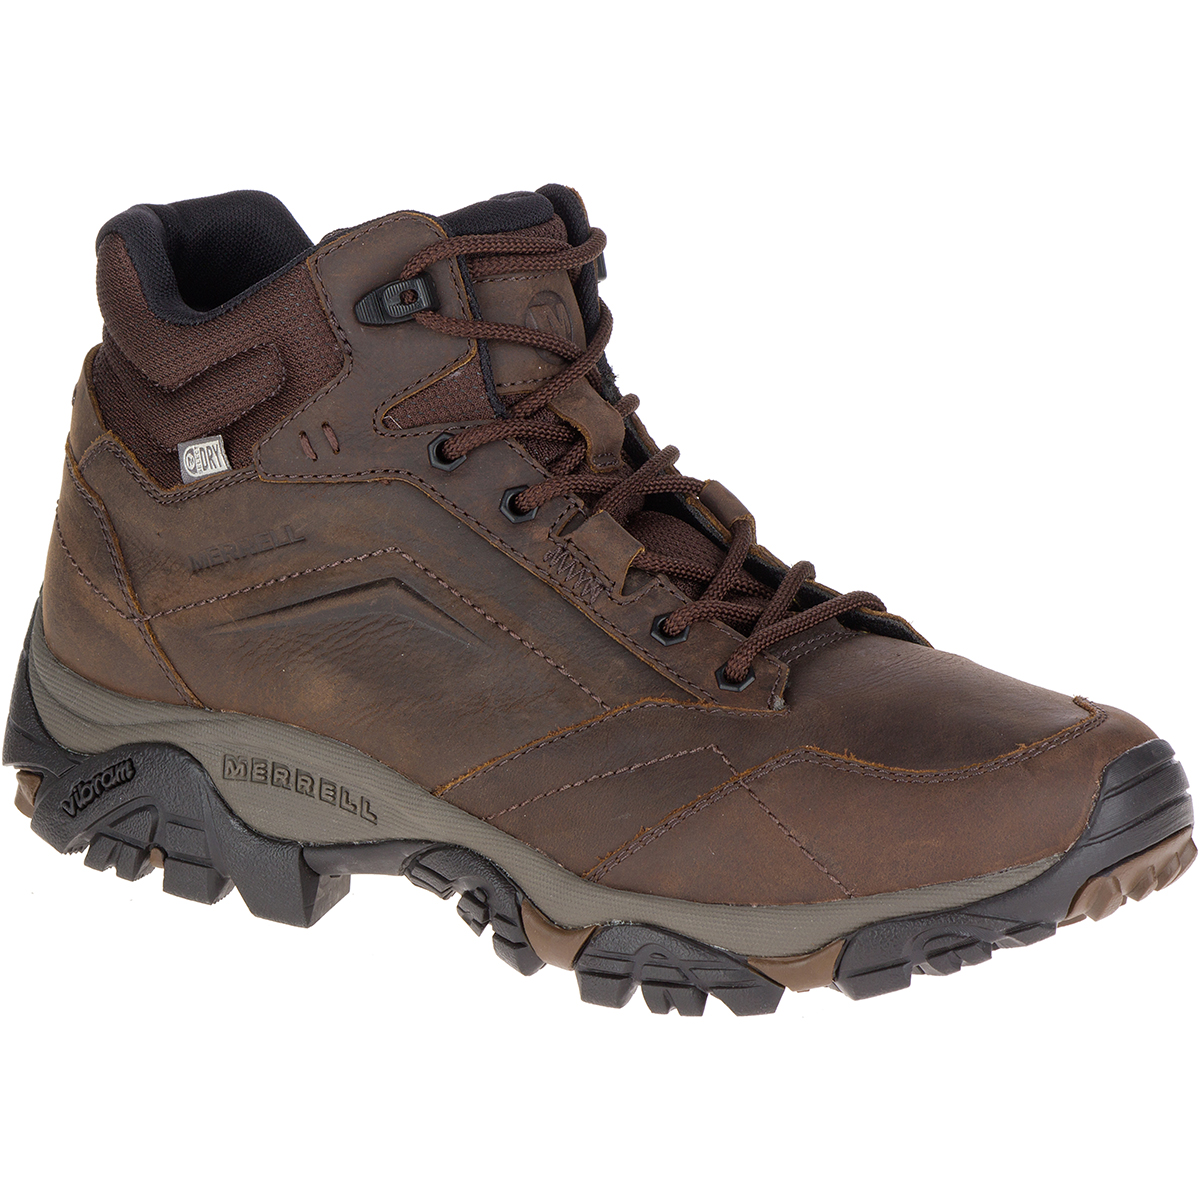 Merrell Men's Moab Adventure Mid Waterproof Hiking Boots, Dark Earth, Wide - Brown, 9.5